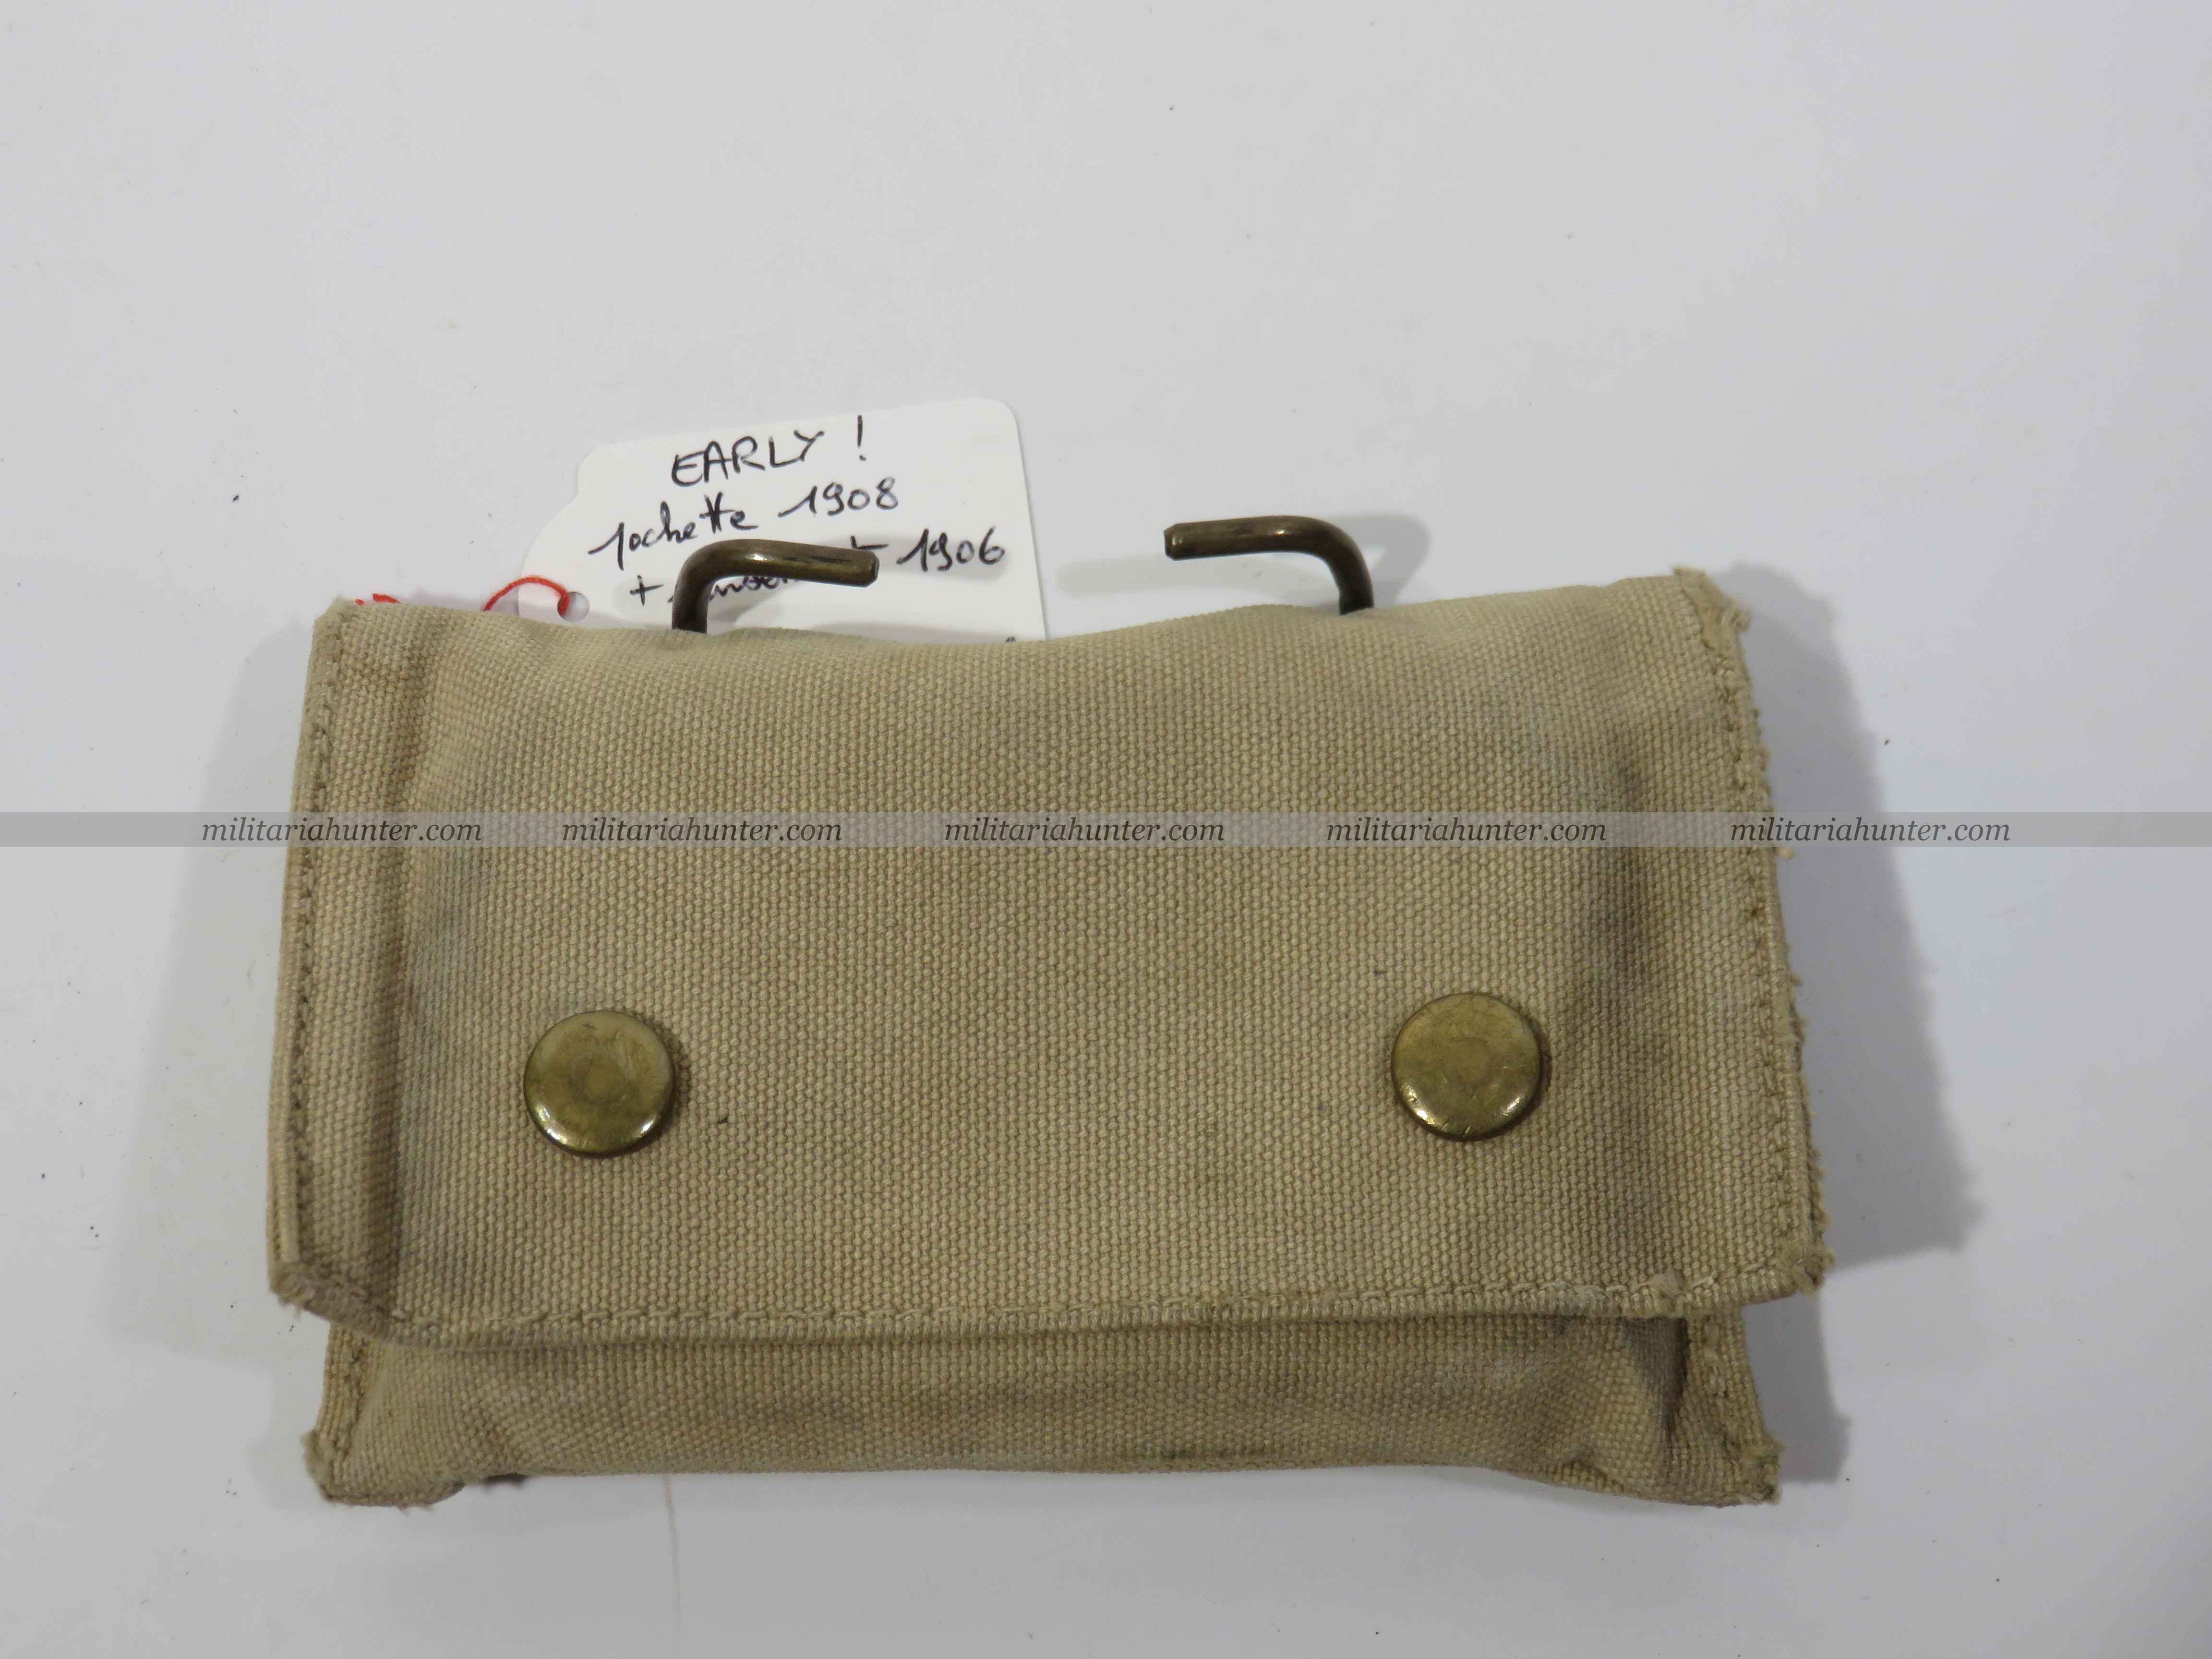 militaria : US ww1 early- rare pansement 1906 dans pochette 1908